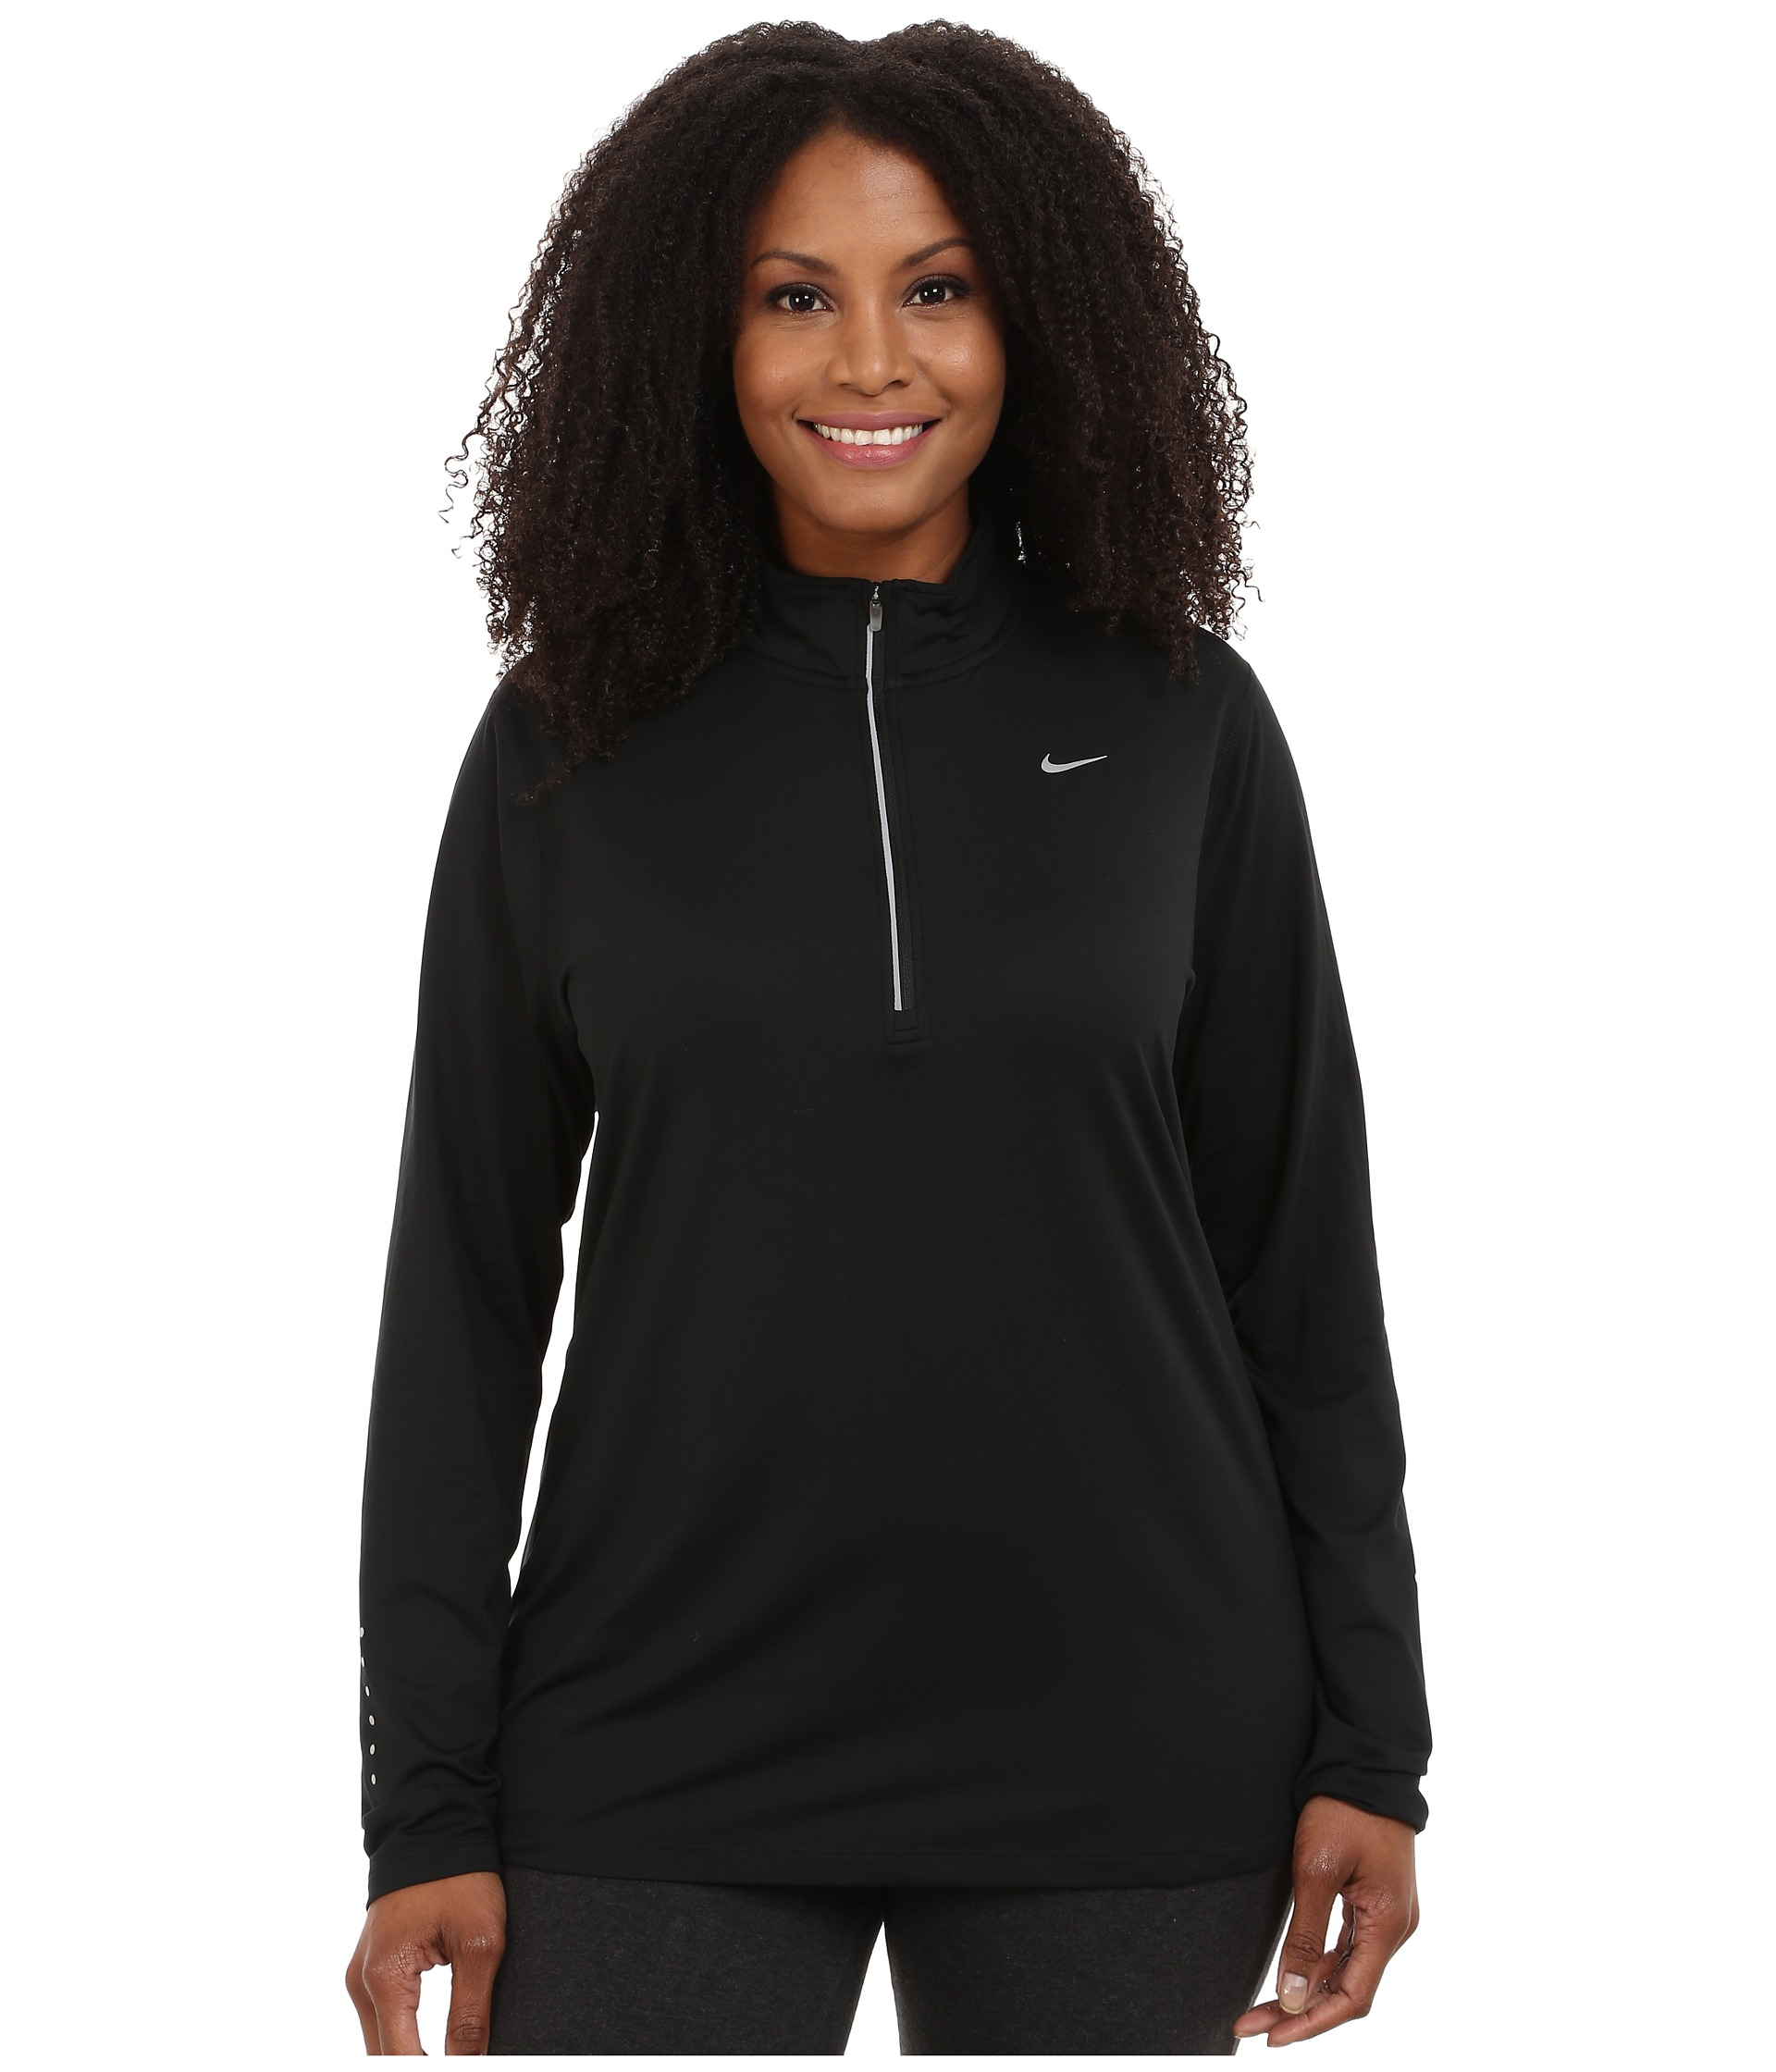 Nike dry element 1 4 zip running top size 1x 3x at for 3x shirts on sale